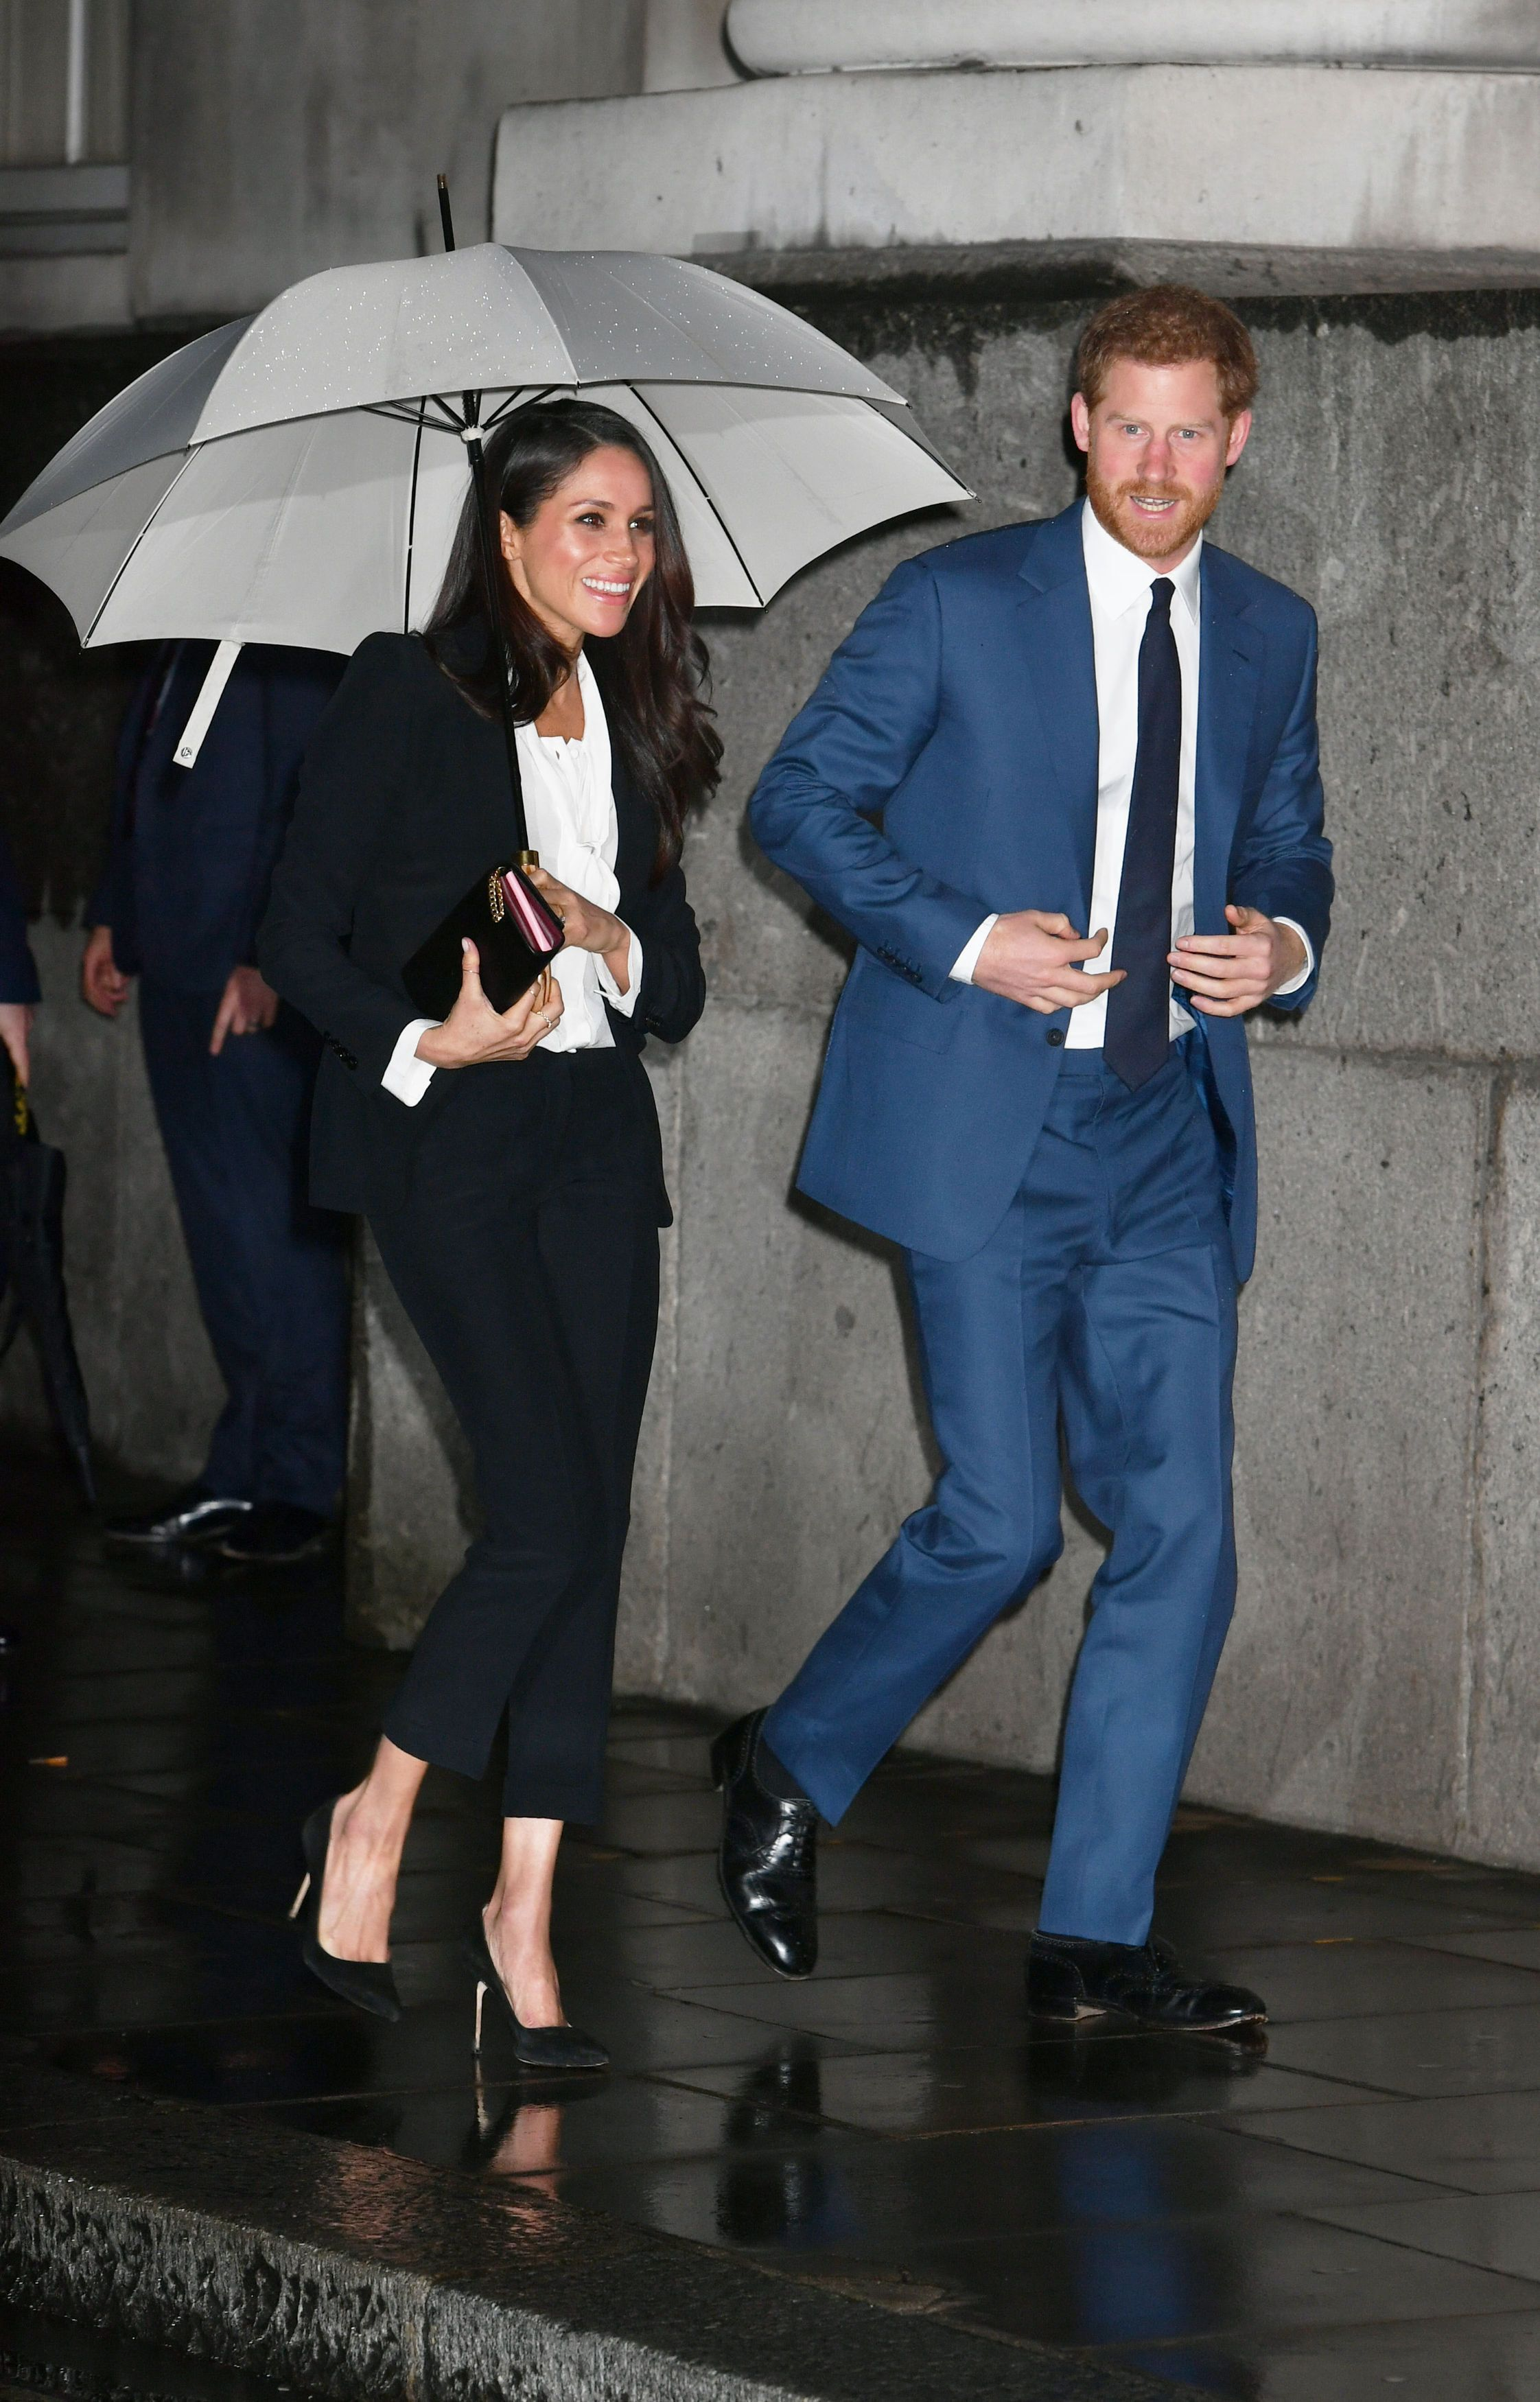 Prince Harry opted for a navy suit with a matching blue tie. They carried this season's hottest accessory: an umbrella.